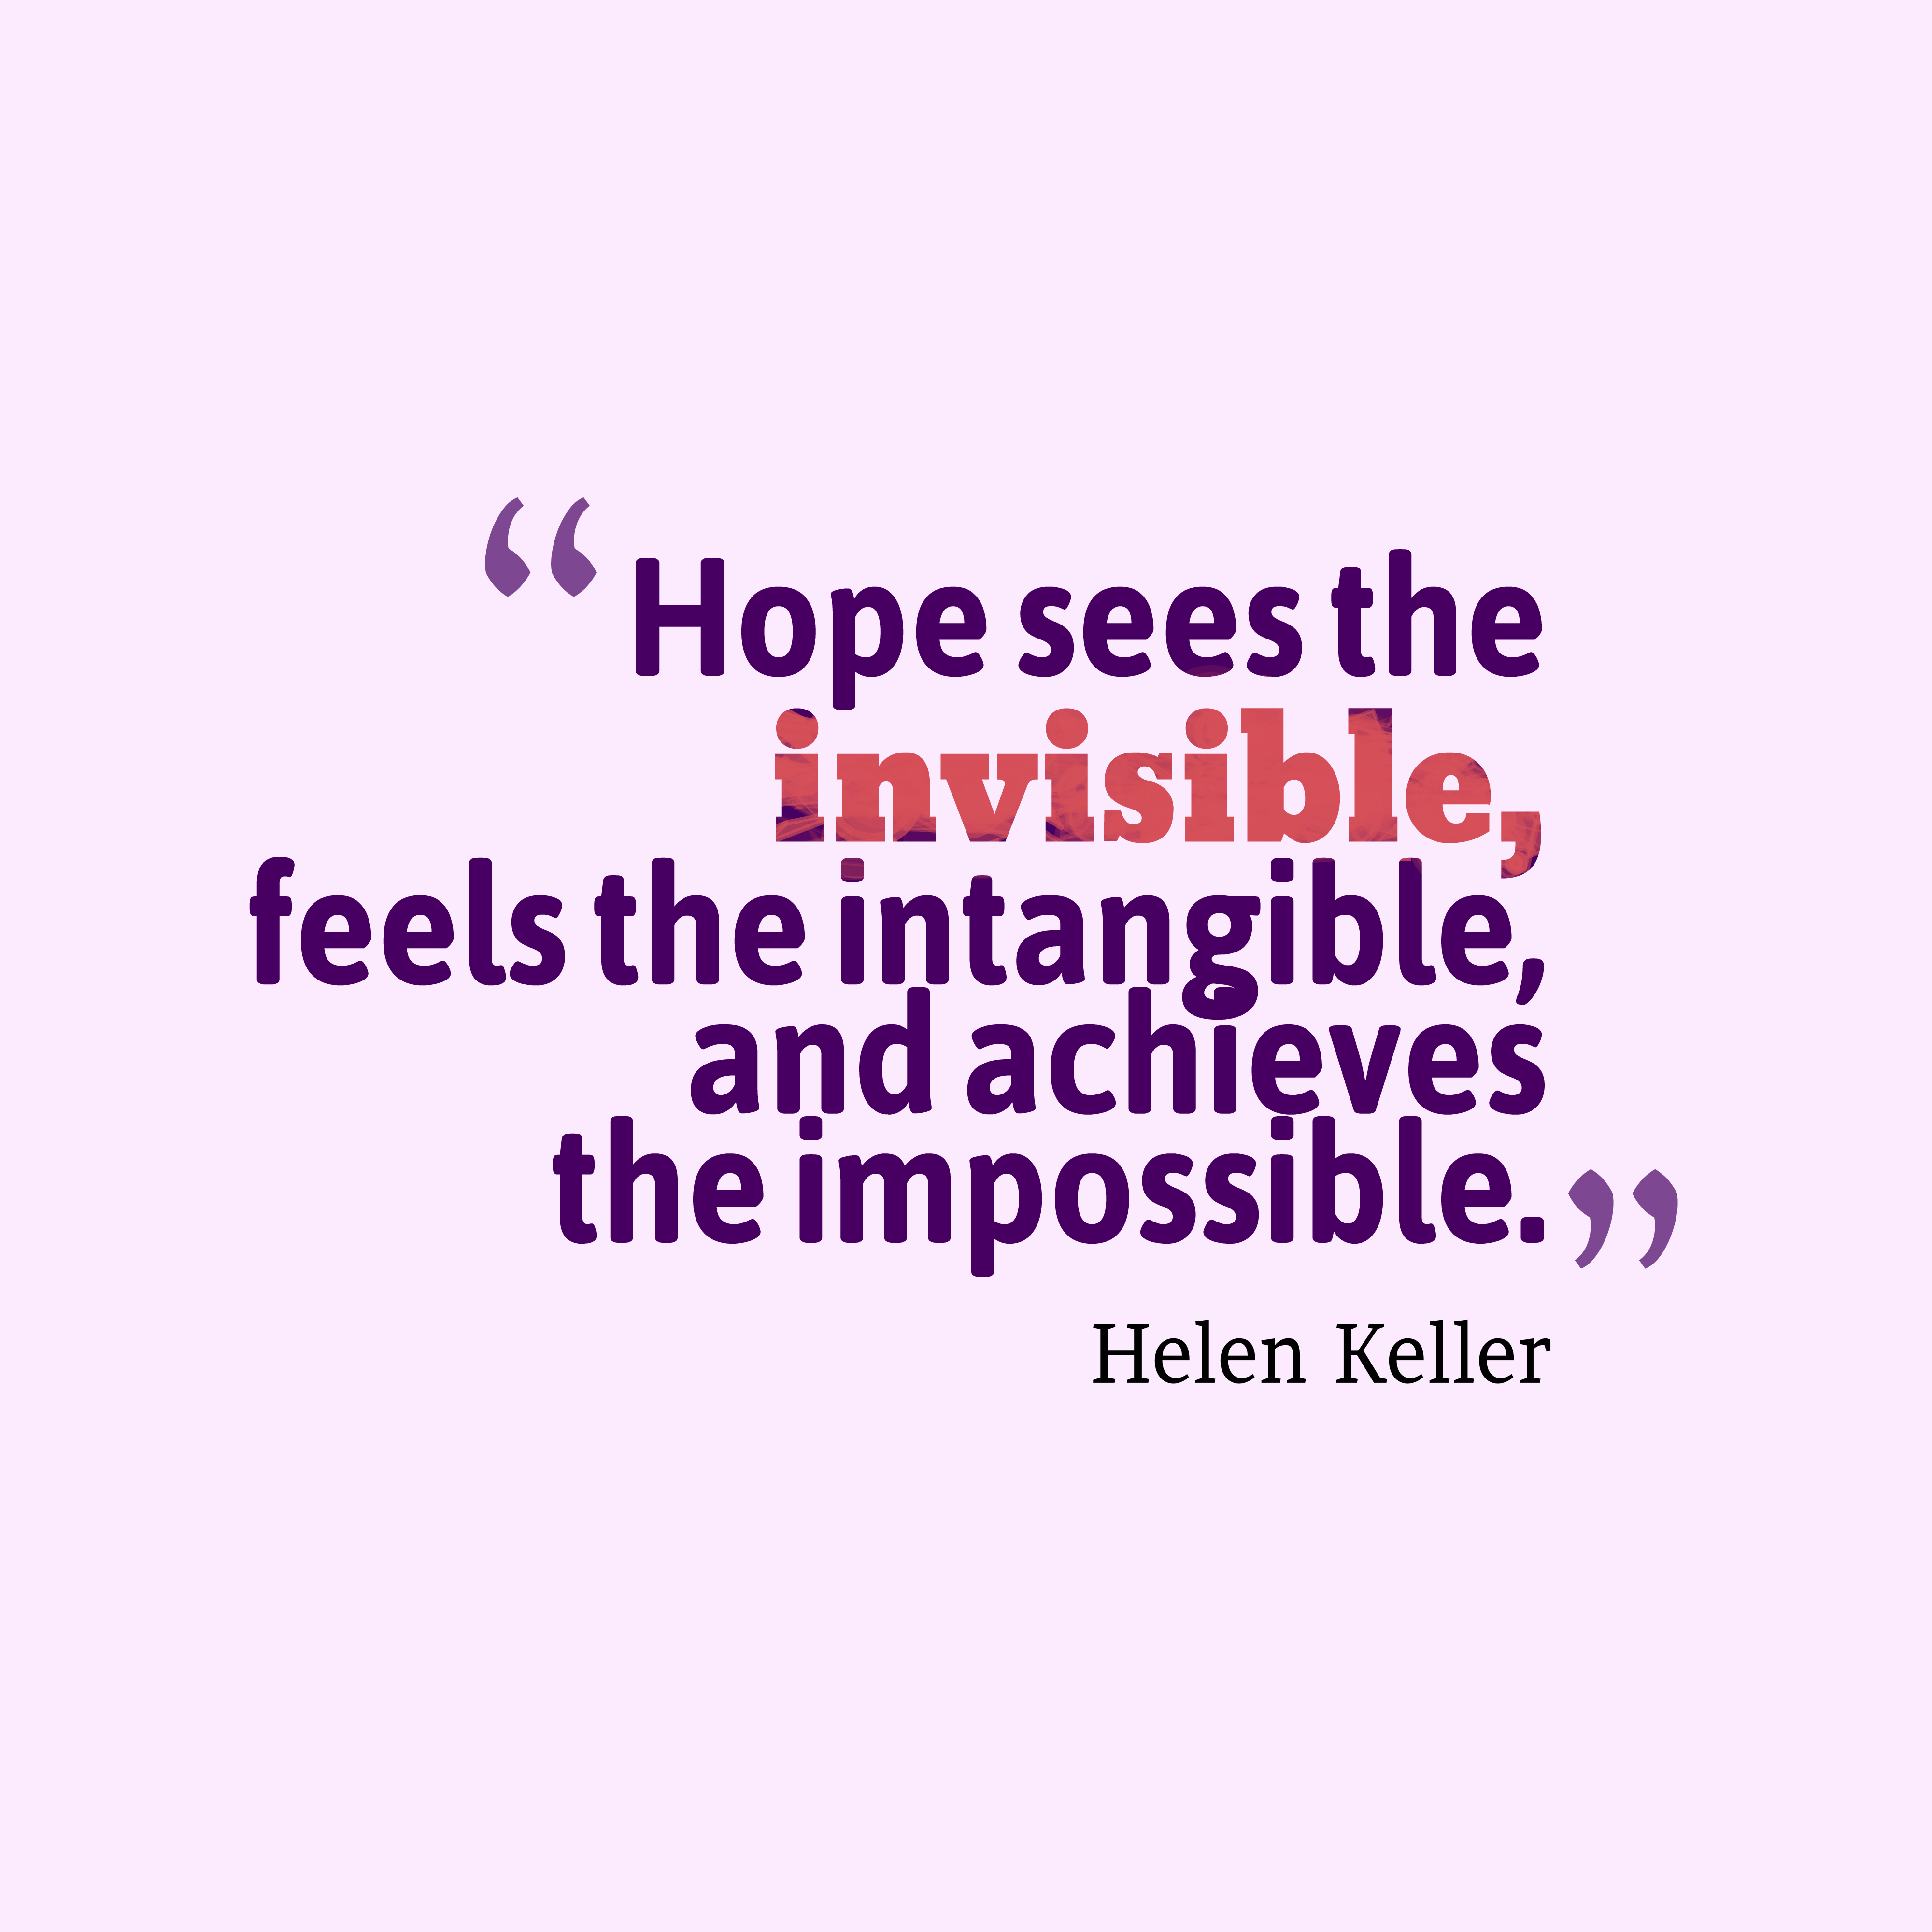 Quotes image of Hope sees the invisible, feels the intangible, and achieves the impossible.